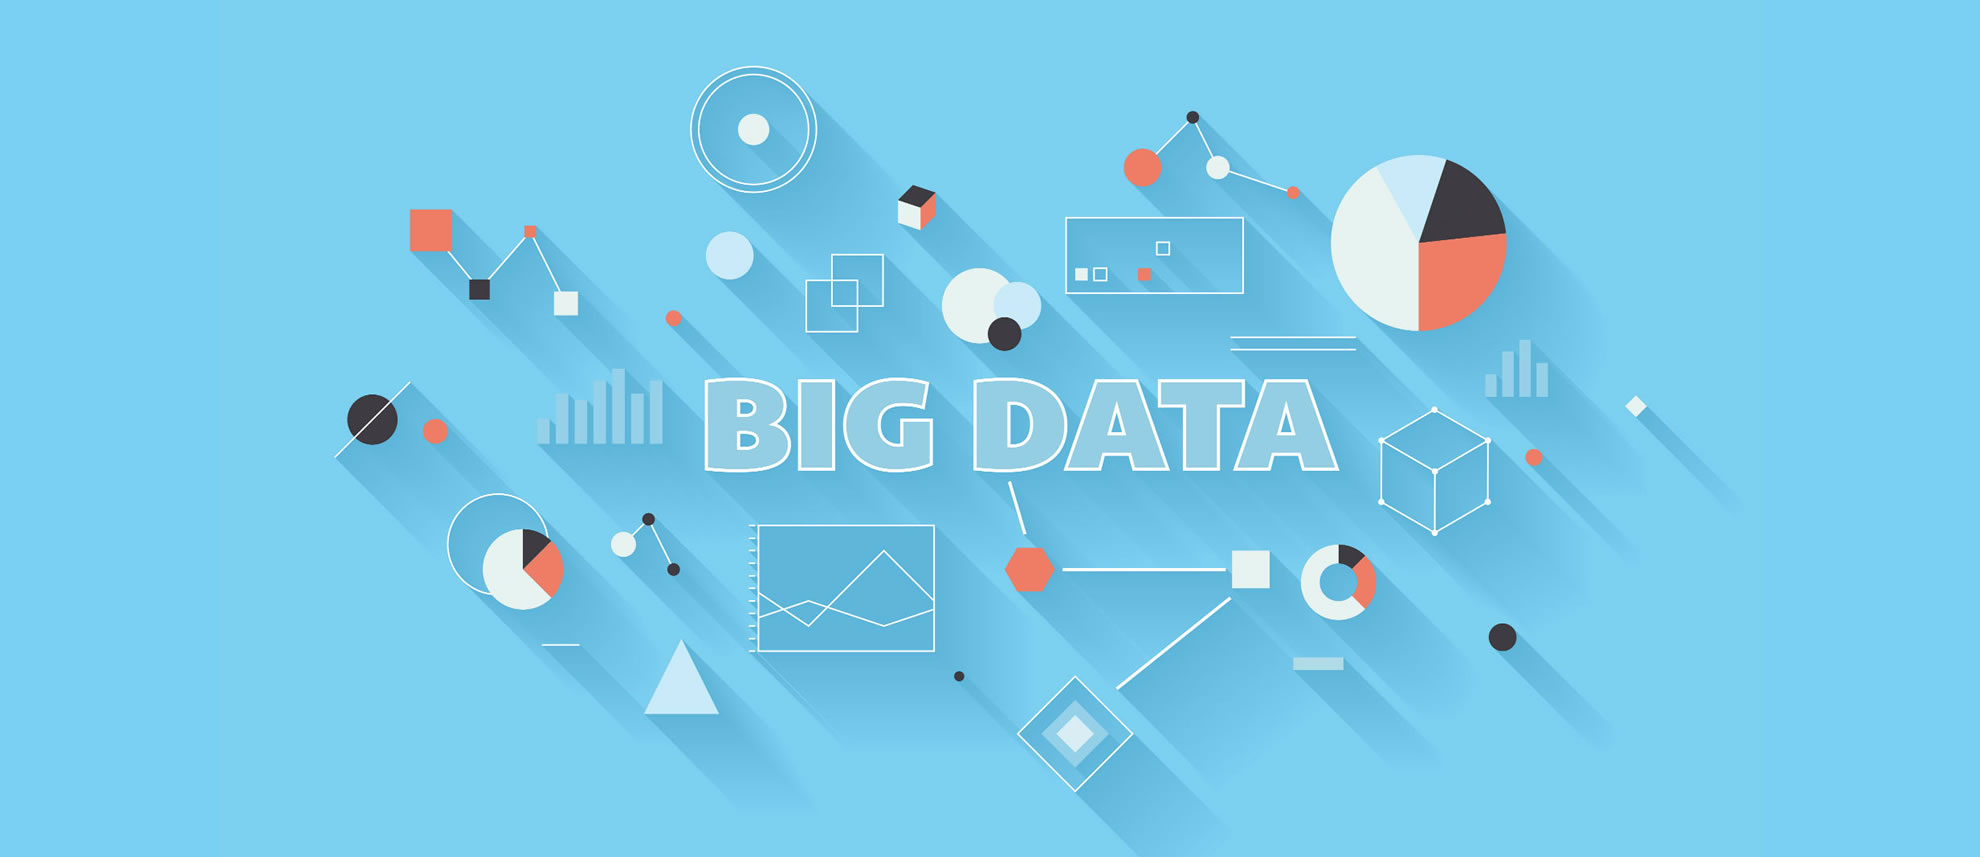 Everything you need to know about Big Data.